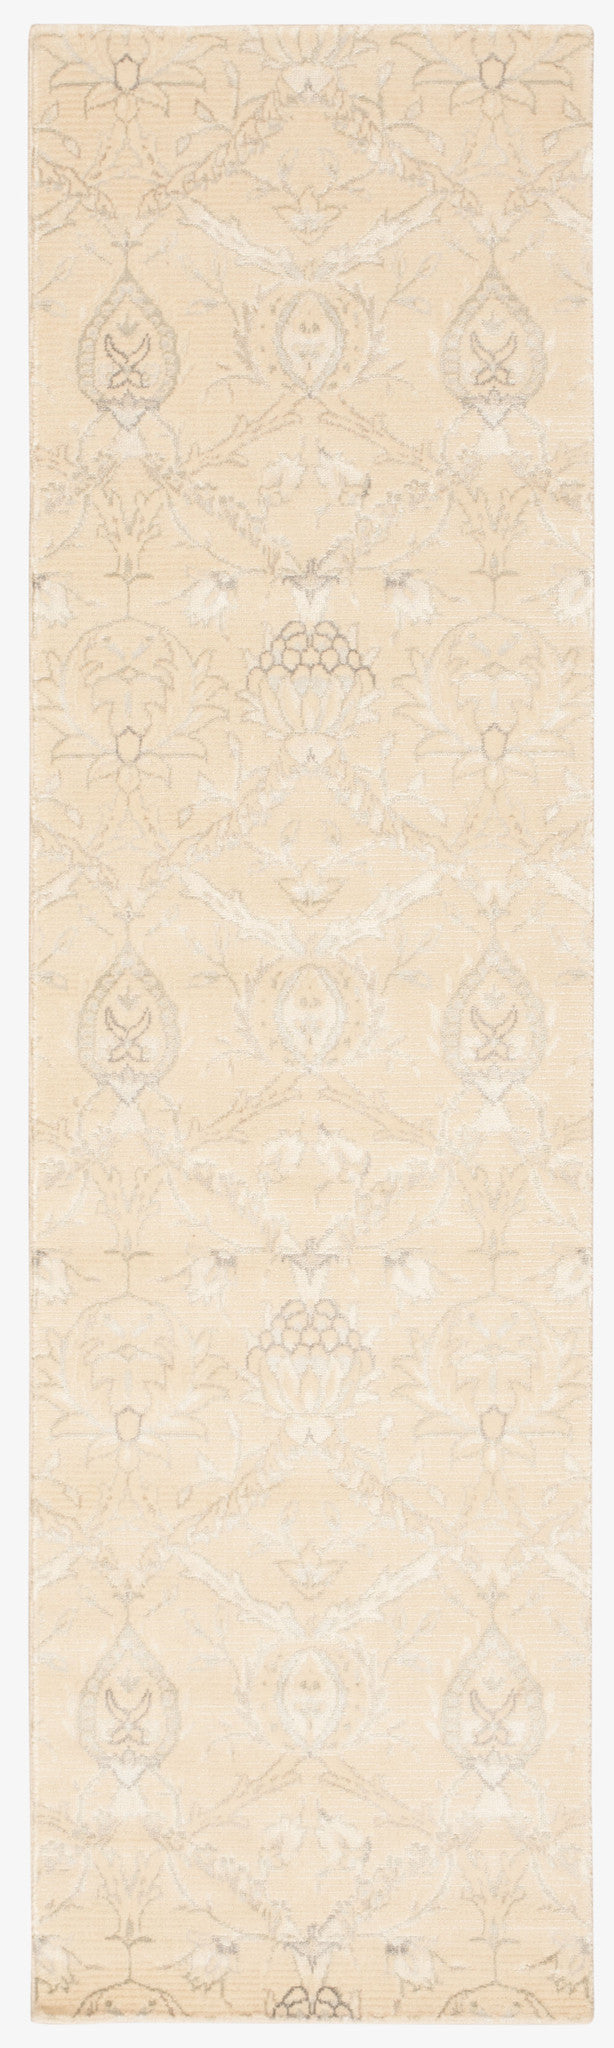 Nourison Luminance Cream Area Rug LUM07 CREAM